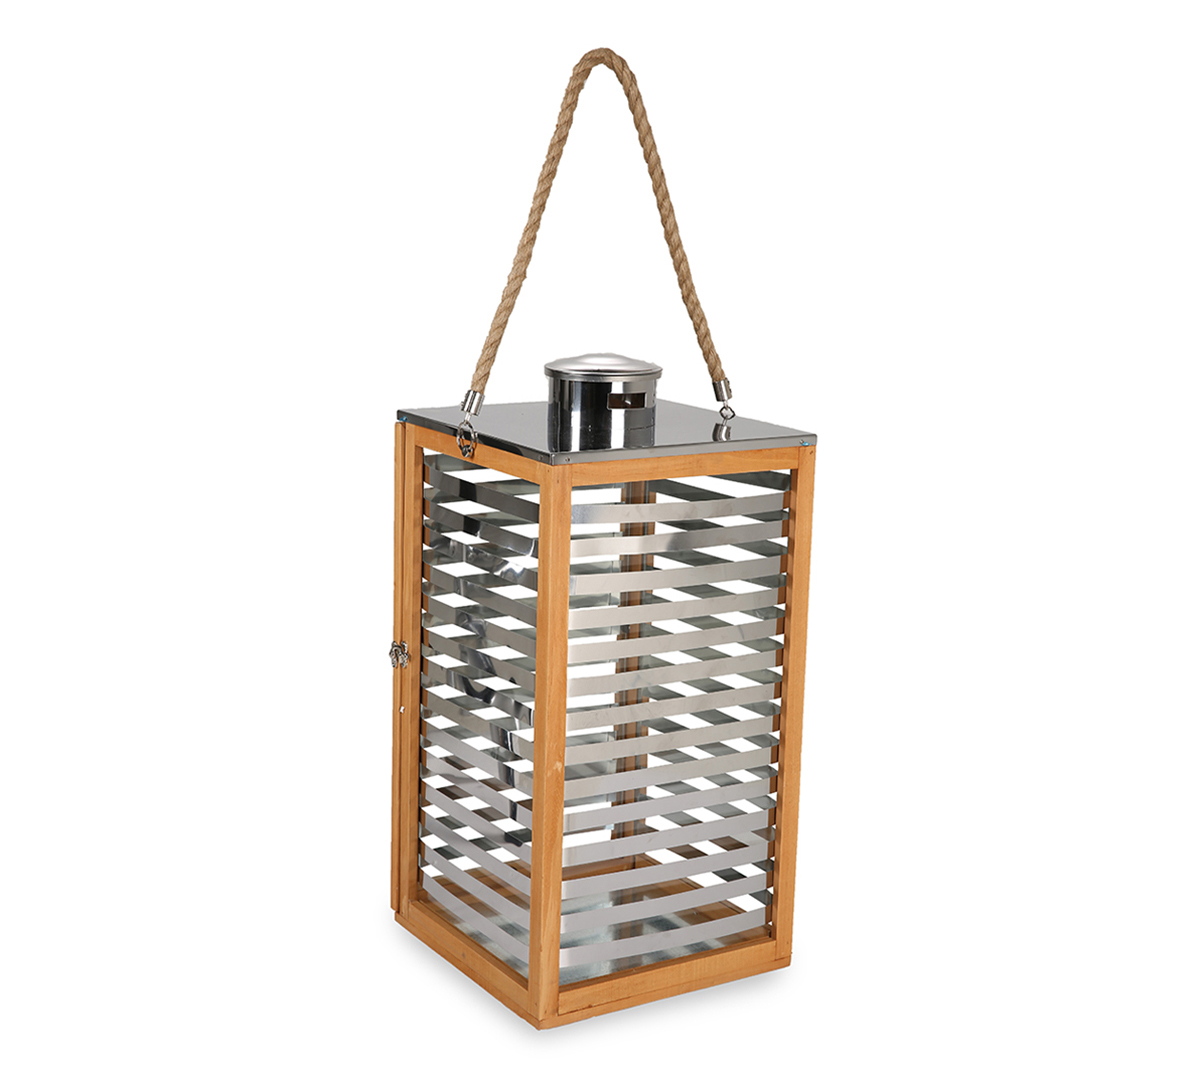 LS Wooden & S.S Lantern With Rope L